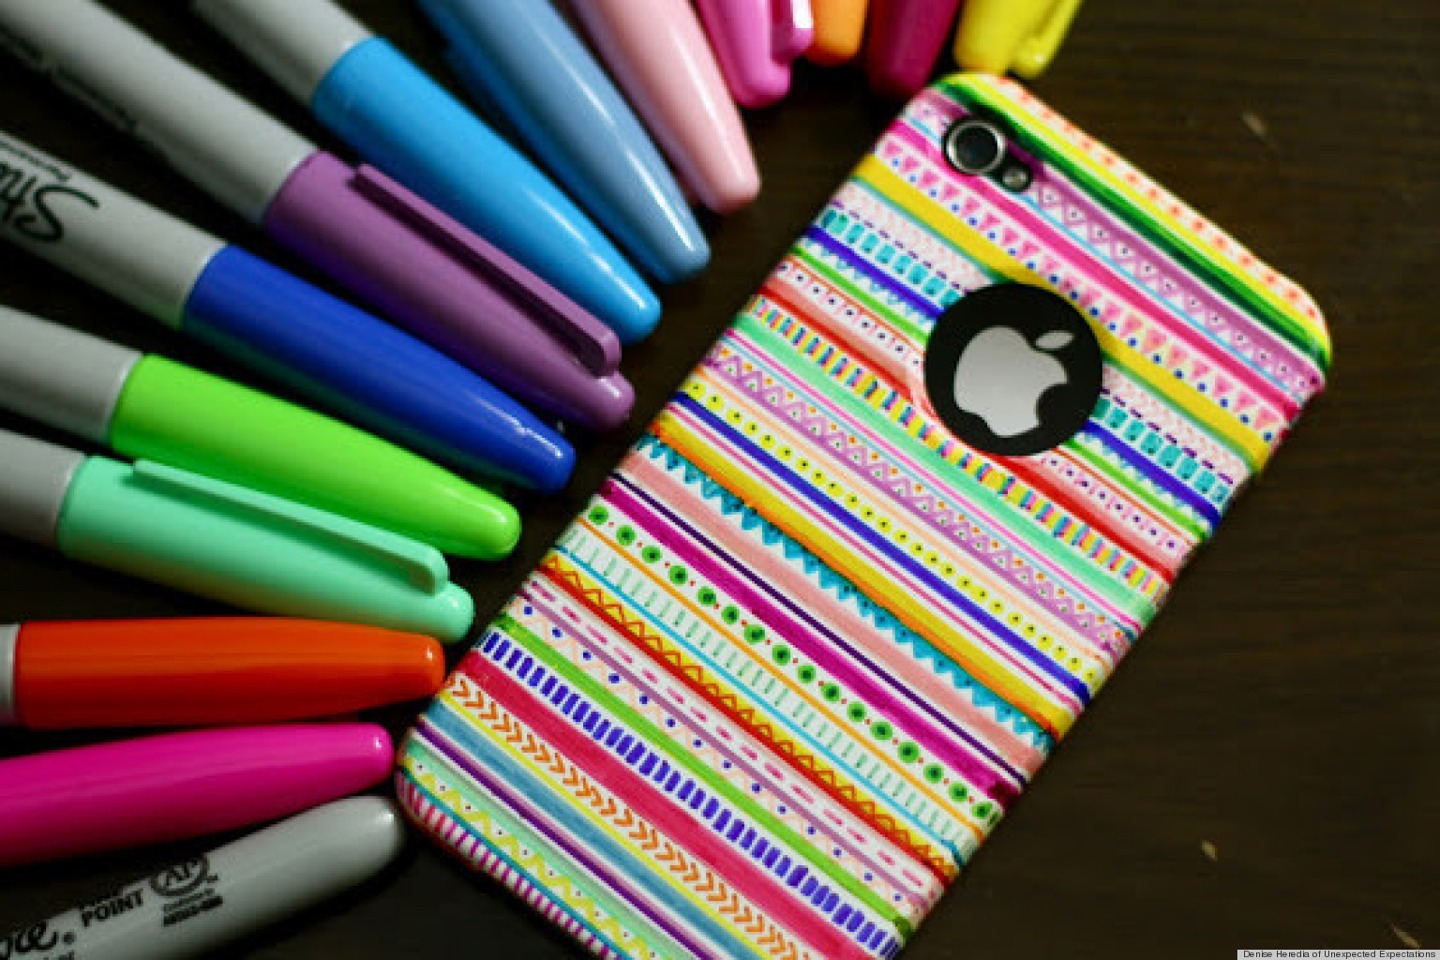 Find a design on google and draw it on your case with colored markers. Then wait for it to dry.